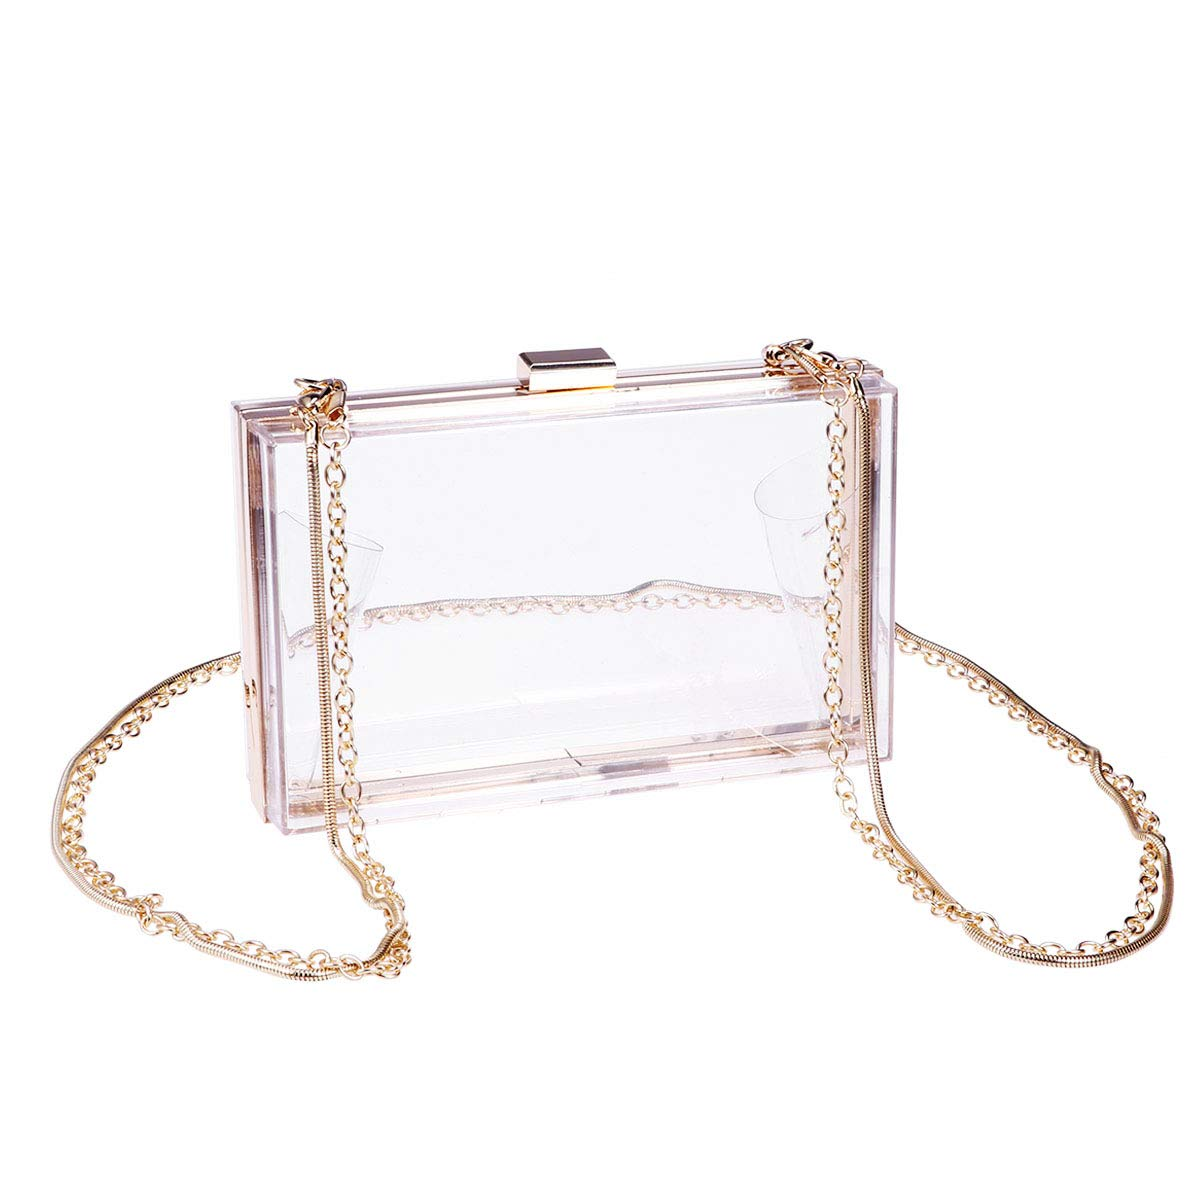 570815080703 Details about BESTOYARD Box Clutch Transparent Clear Crossbody Handbag  Acrylic Evening Bag